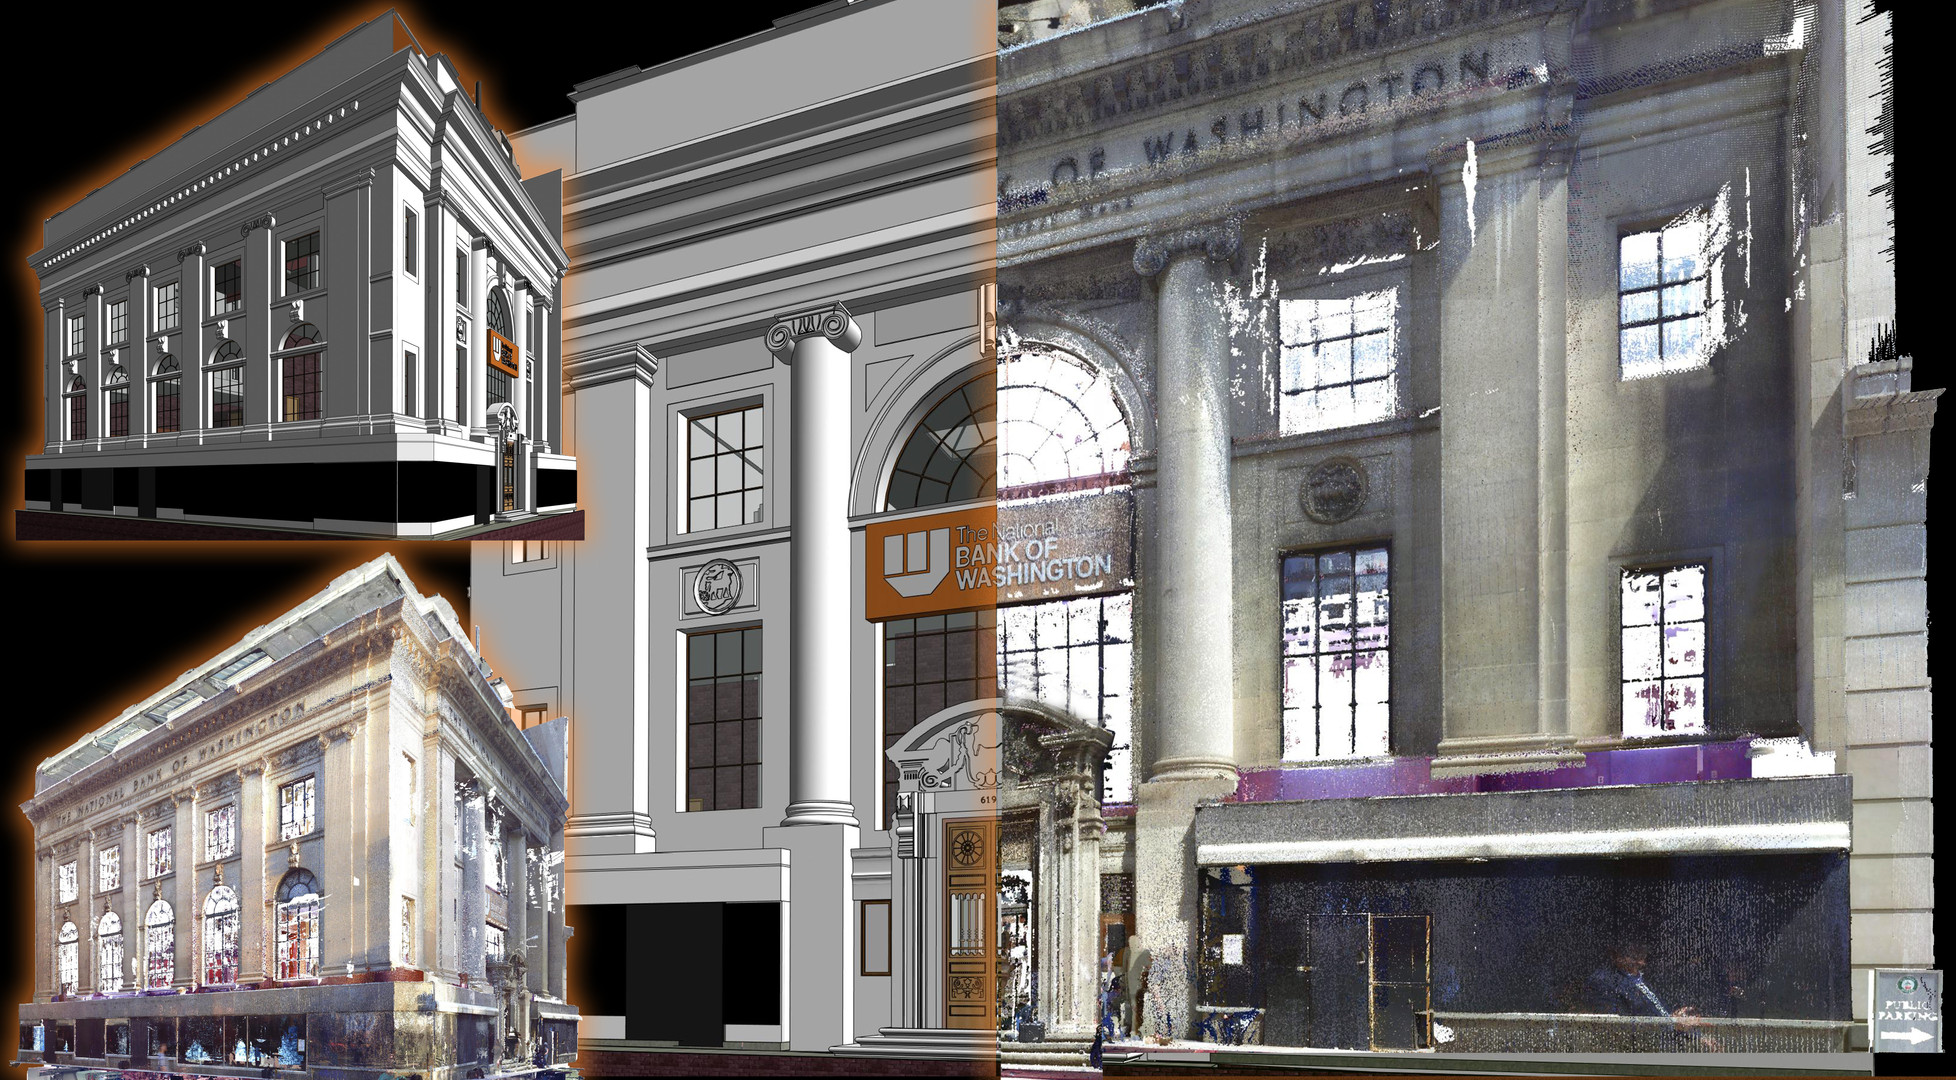 3D REVIT MODEL FROM LASER SCAN DATA-Shown here is an accurate 3D model taken from laser scan point cloud data of a historical site. PMC has years of experience scanning and modeling historical facilities for restoration and preservation. Having a digital twin provides teams access to a sole source of data for any future projects.